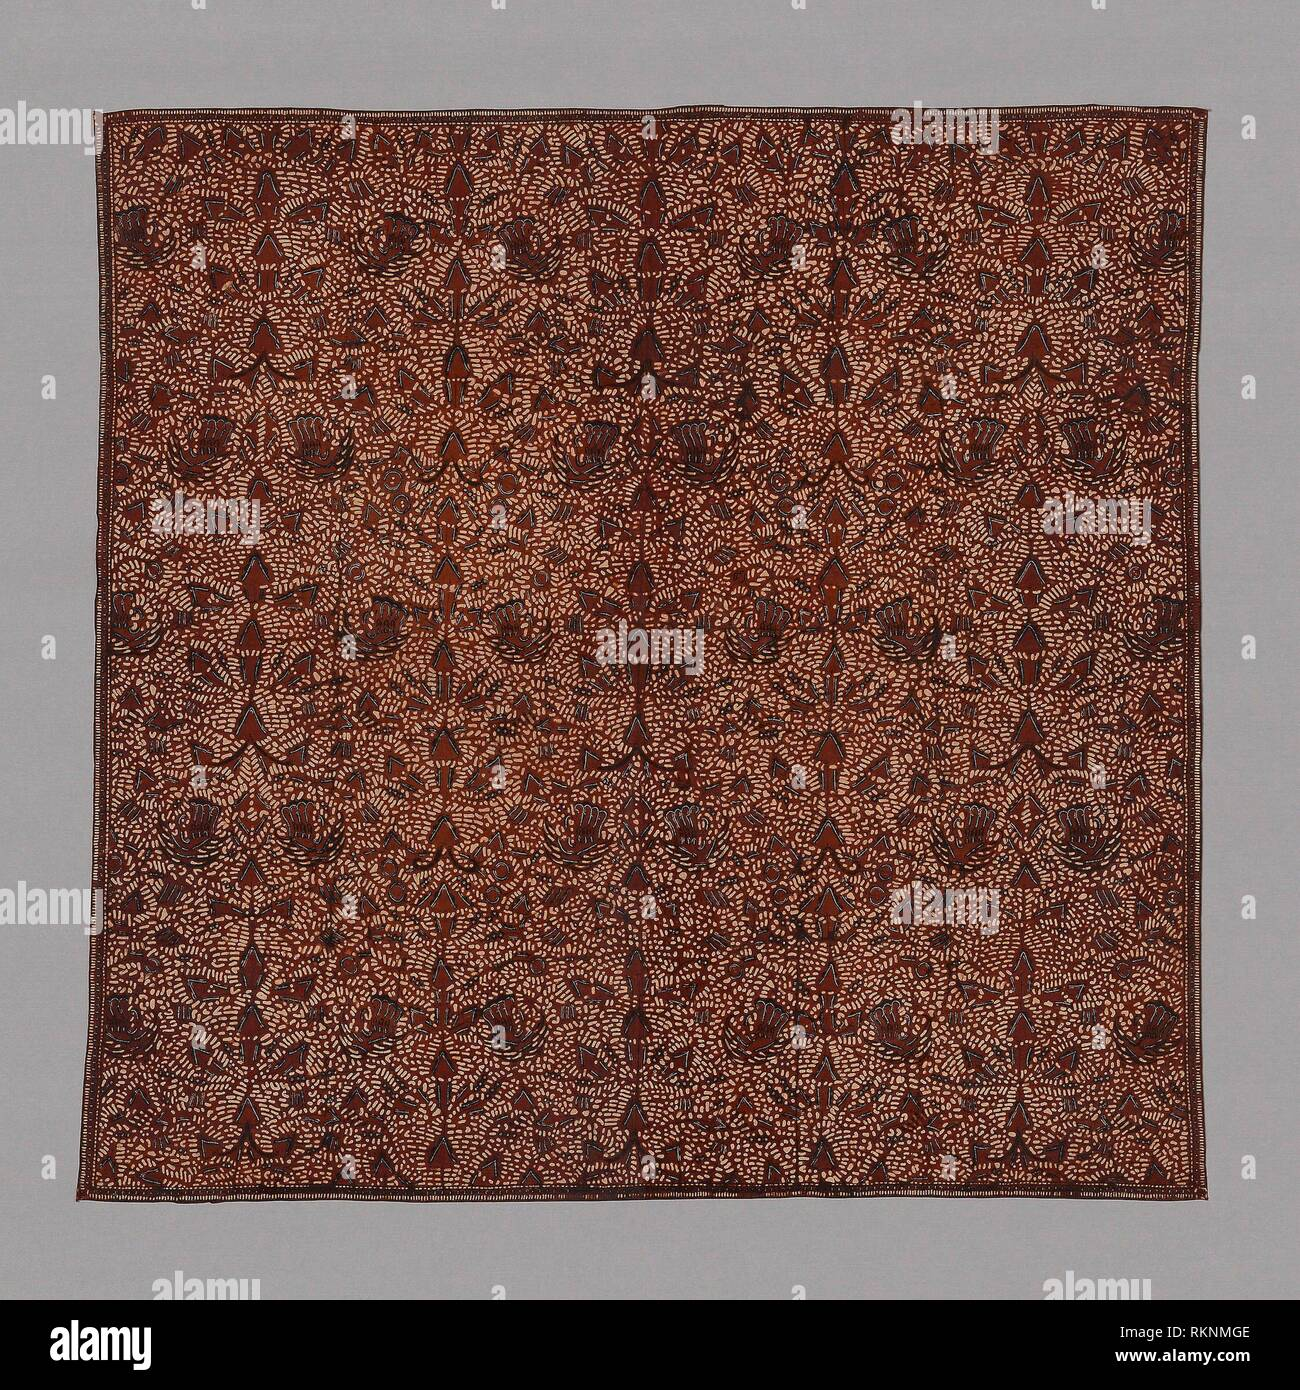 Iket (Headcloth) - 19th century - Indonesia, Central Java - Origin: Java, Date: 1801–1900, Medium: Cotton, batik dyed, Dimensions: 104.7 x 107.6 cm - Stock Image